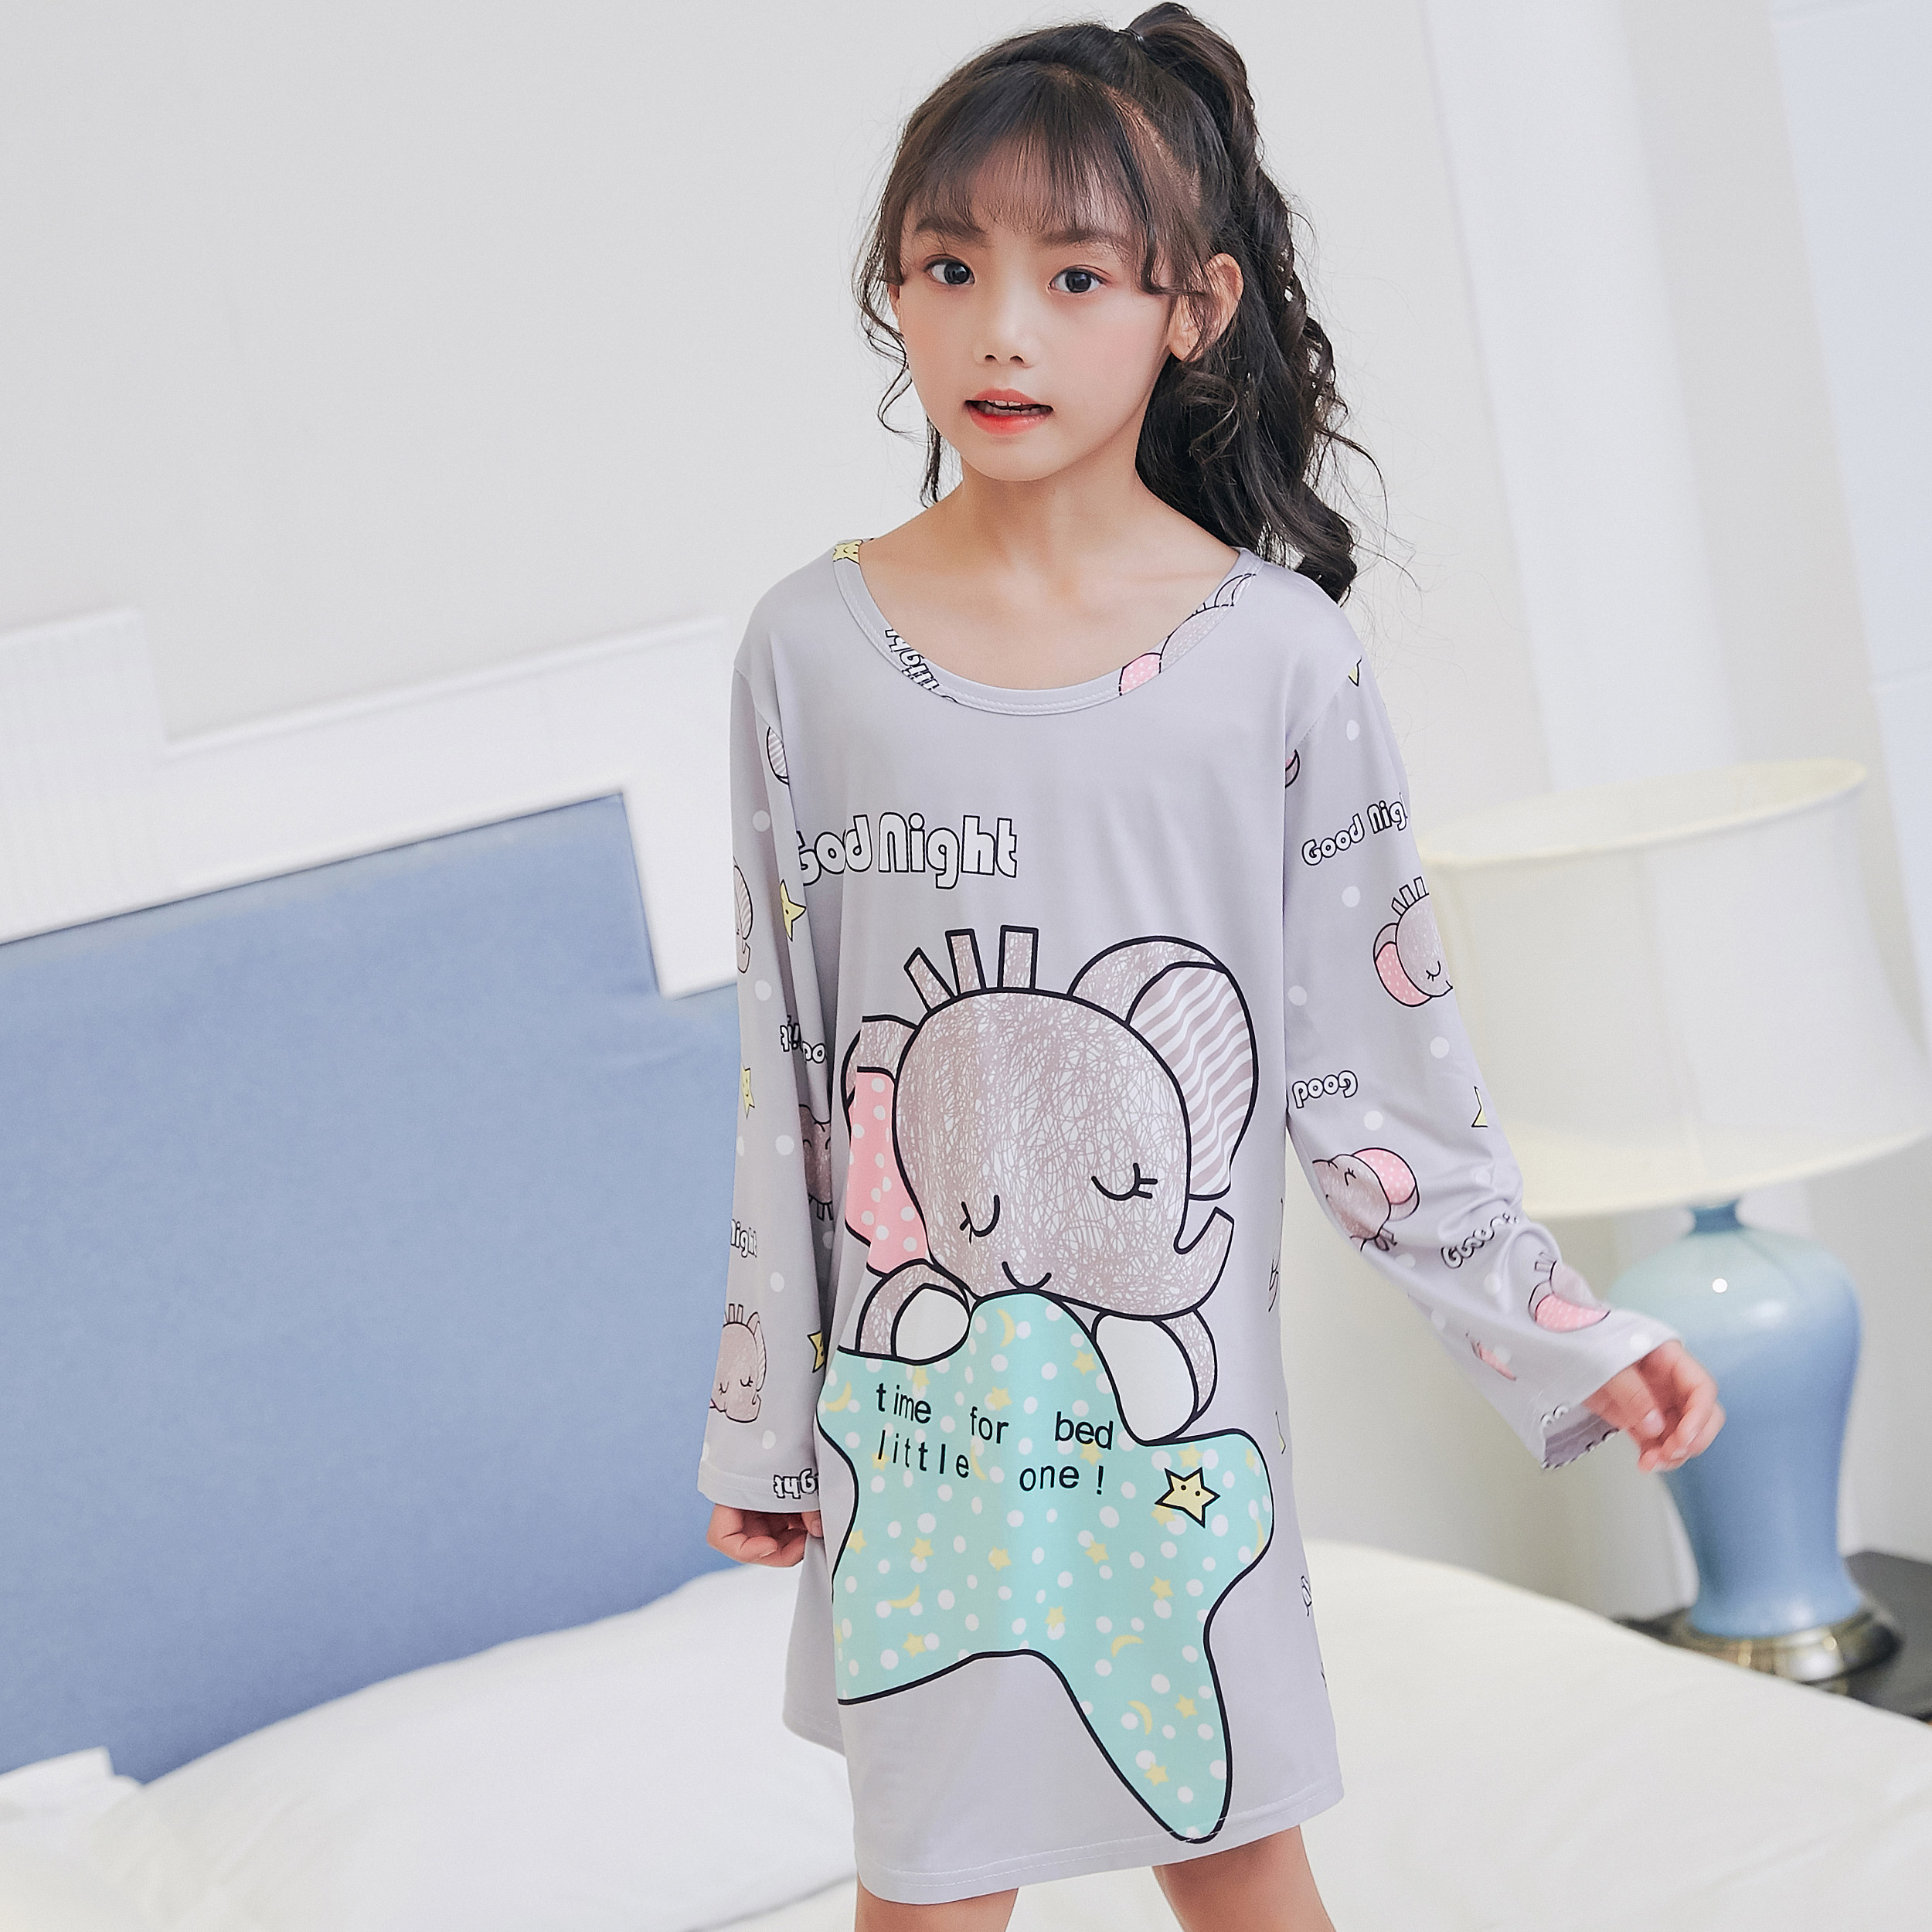 217cd30cc0 Children Clothing 2018 Autumn Dresses Girls Baby Pajamas Cotton Princess  Nightgown Kids Home Girl Sleepwear Party Kids Nightgown-in Nightgowns from  Mother ...